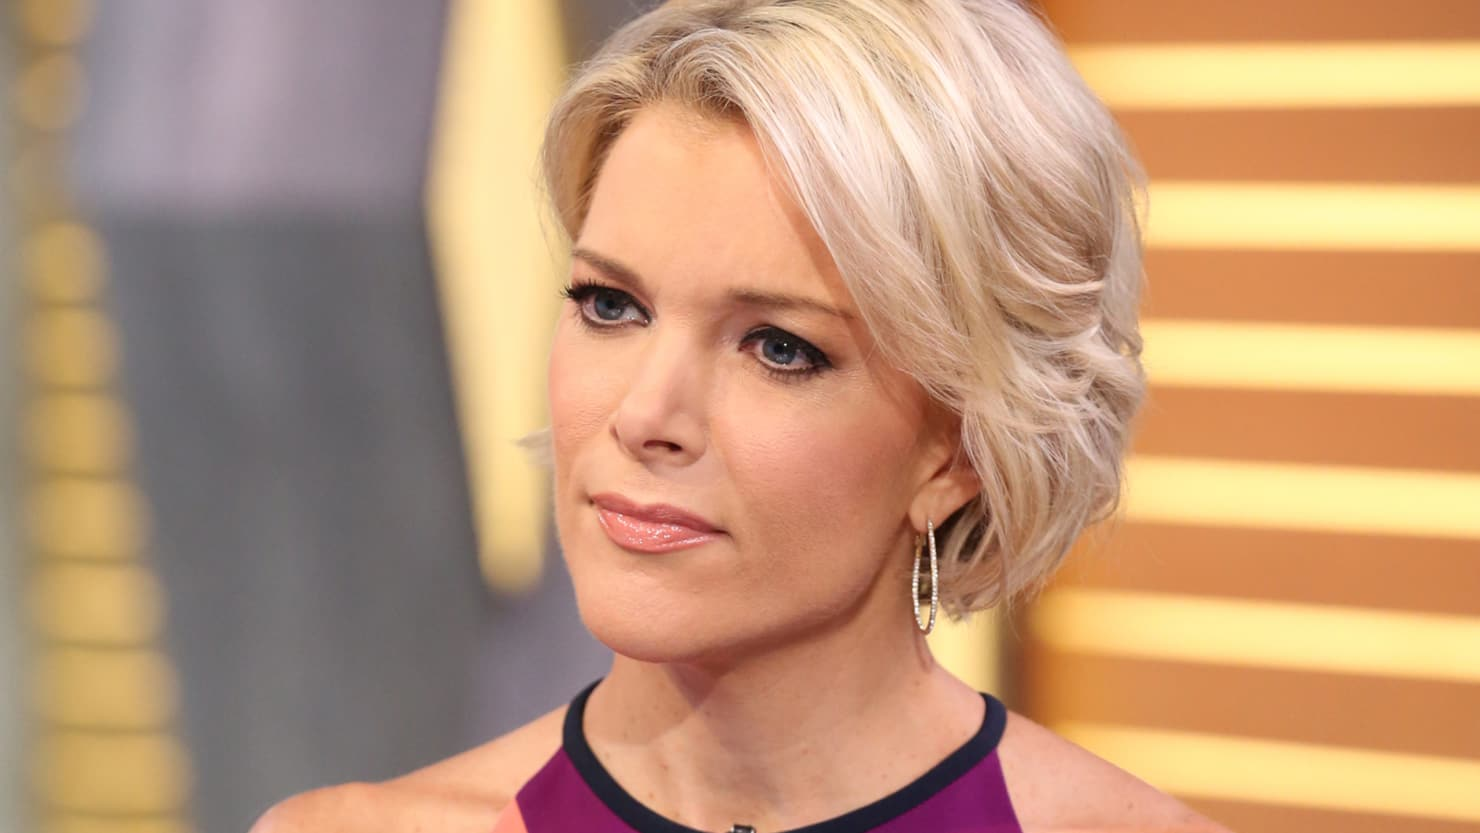 Megyn Kelly nudes (79 photo), Tits, Paparazzi, Twitter, underwear 2017